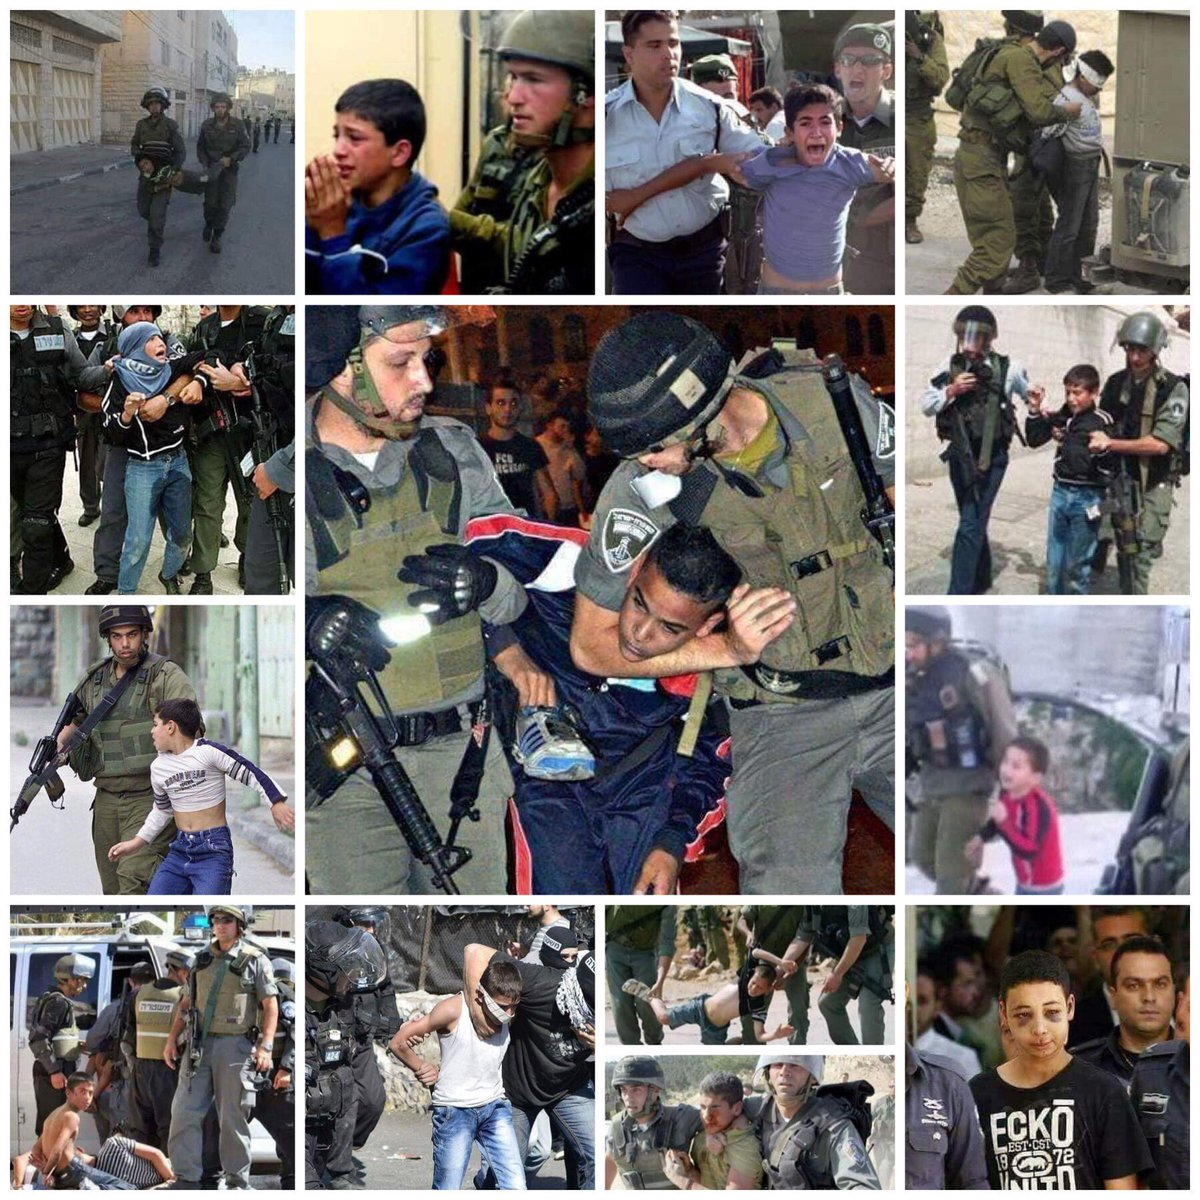 .Stop the Whining 🤬24 #Palestinians got killed and #IDF are terrorists, killing, torturing and harassing on a daily basis. #BoycottIsrael #Gazaunderfire #GazaUnderAttack